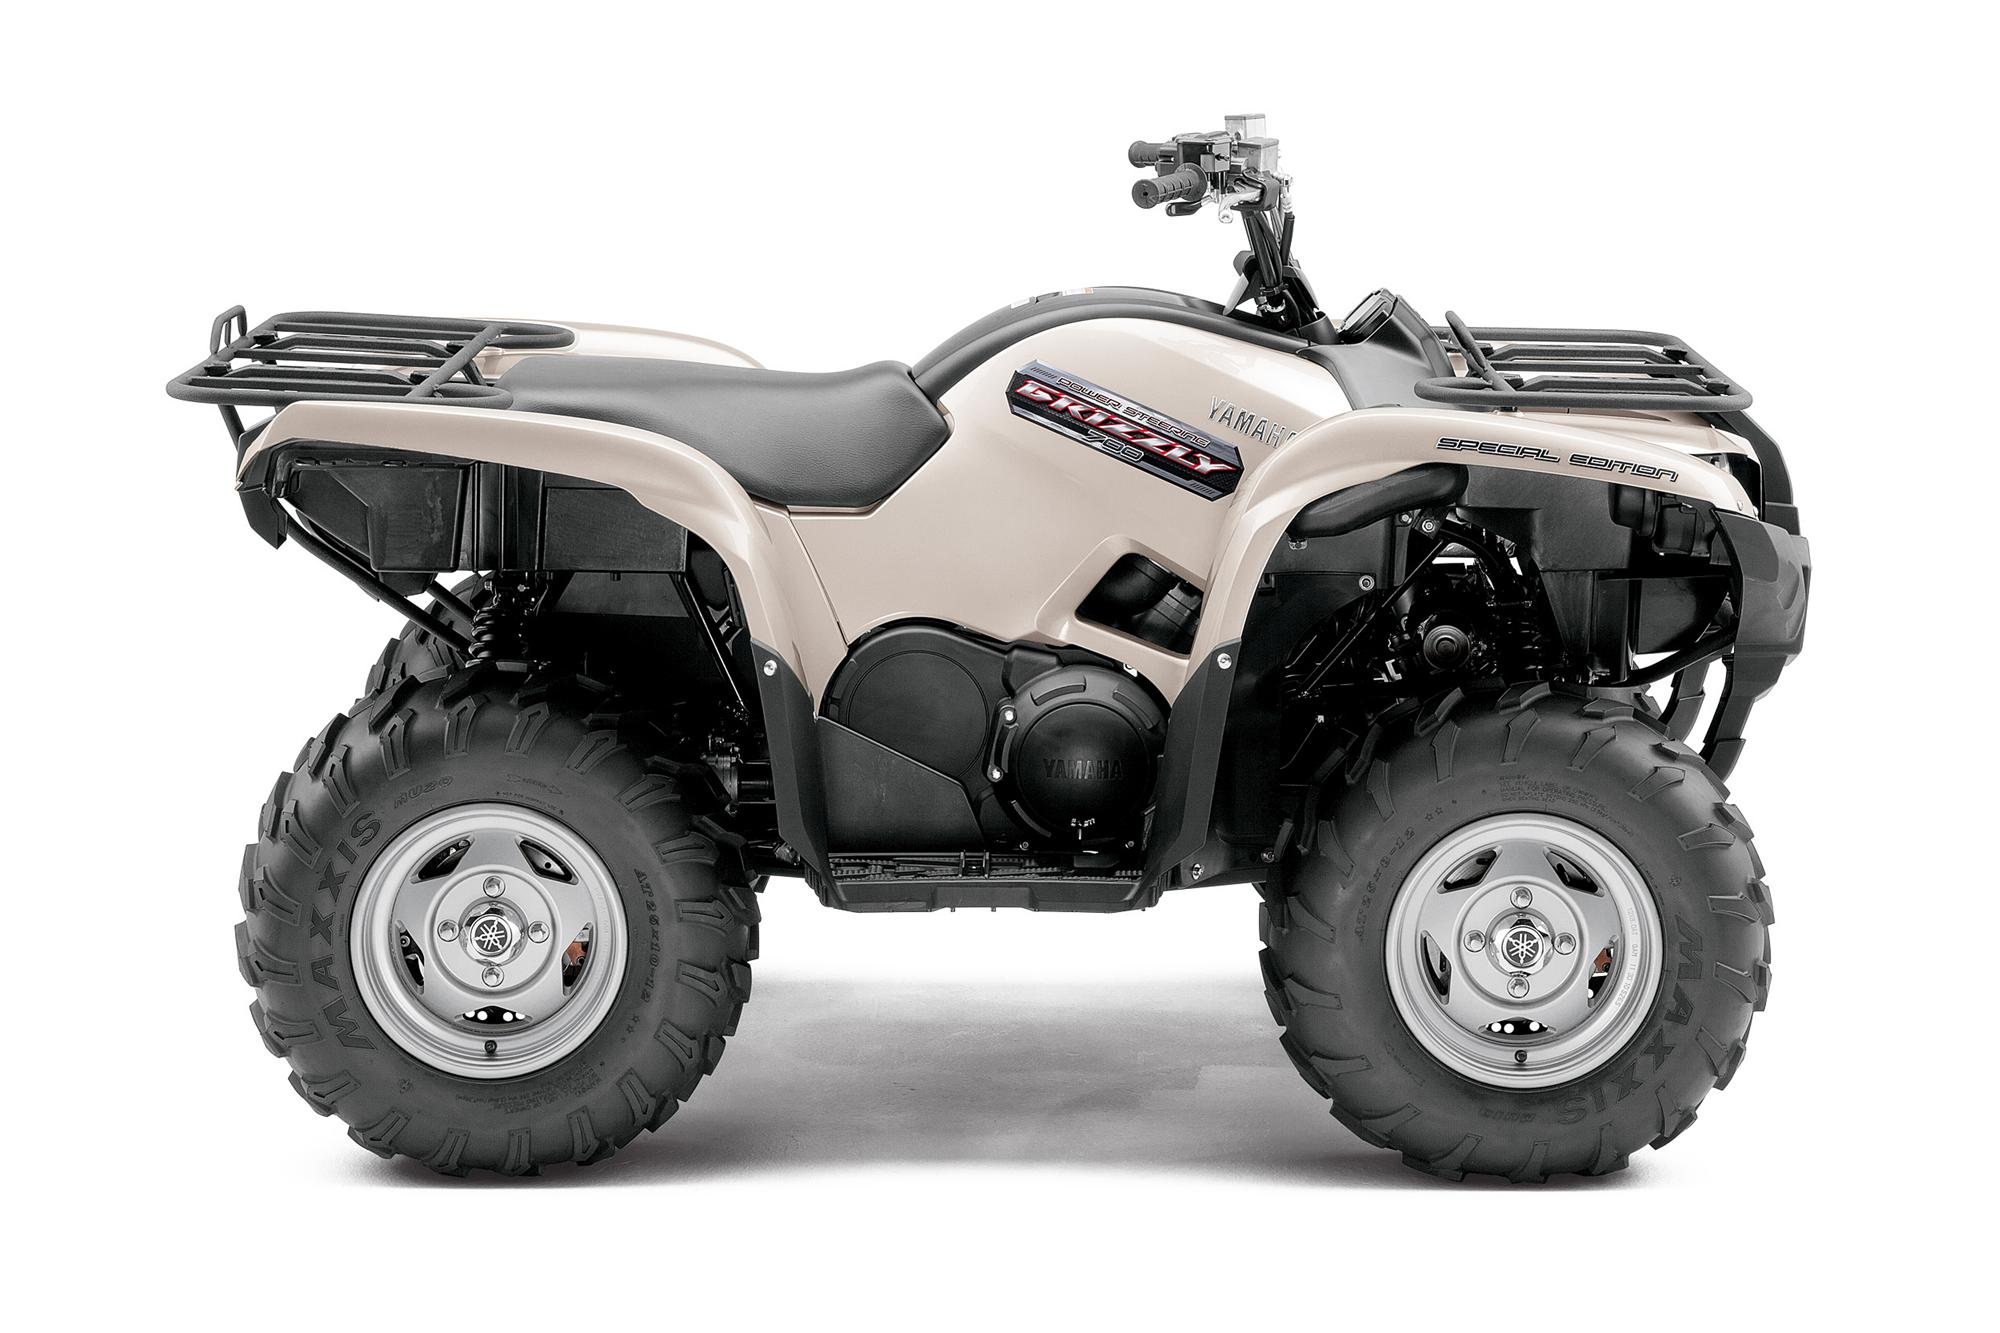 hight resolution of  660 wiring diagram yamaha grizzly 700 fi automatic 4x4 eps special edition 2011 2012